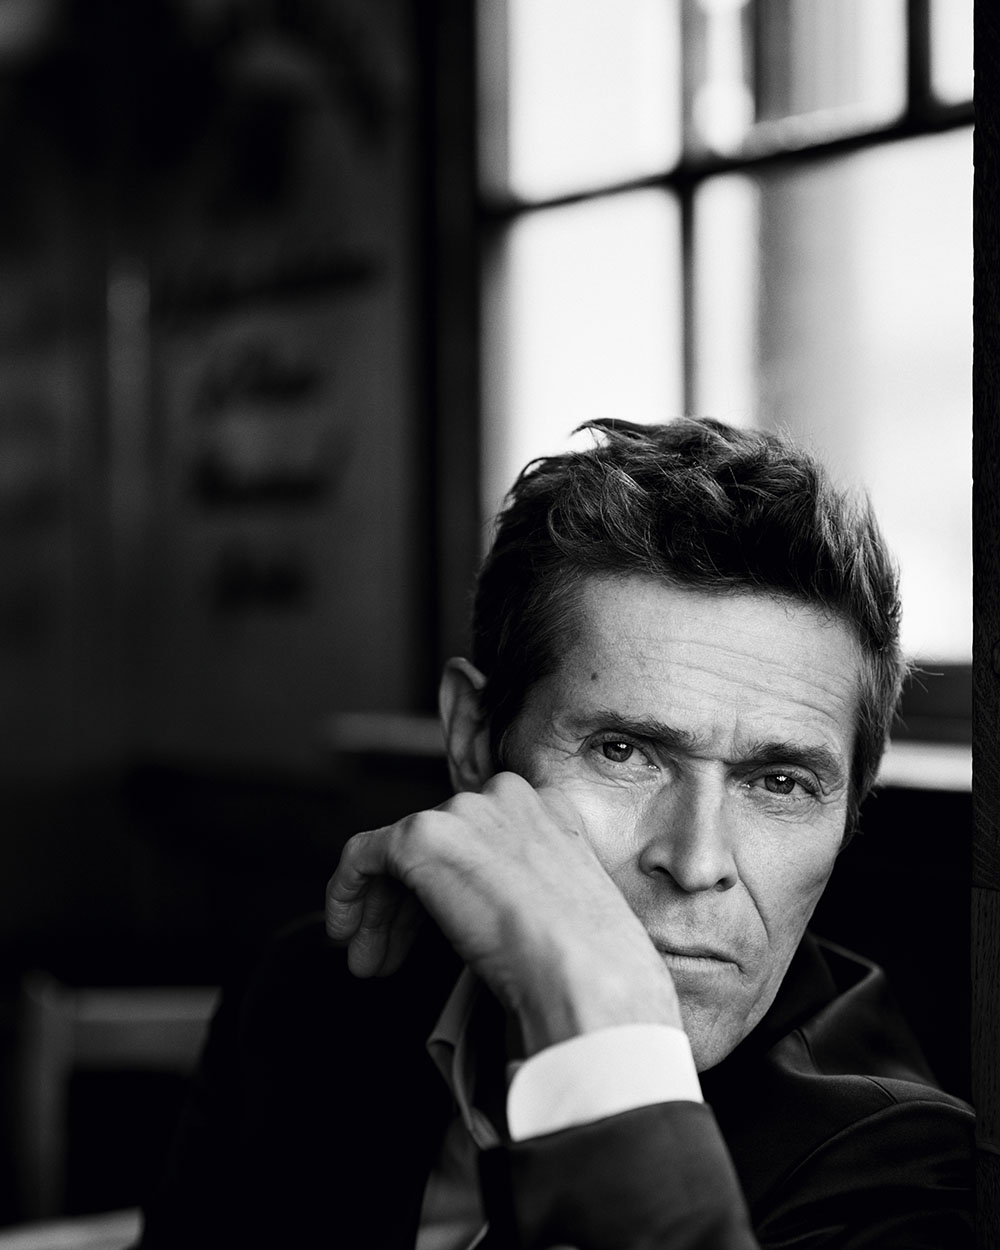 Willem Dafoe and Robert Pattinson cover Esquire UK November December 2019 by Alasdair McLellan